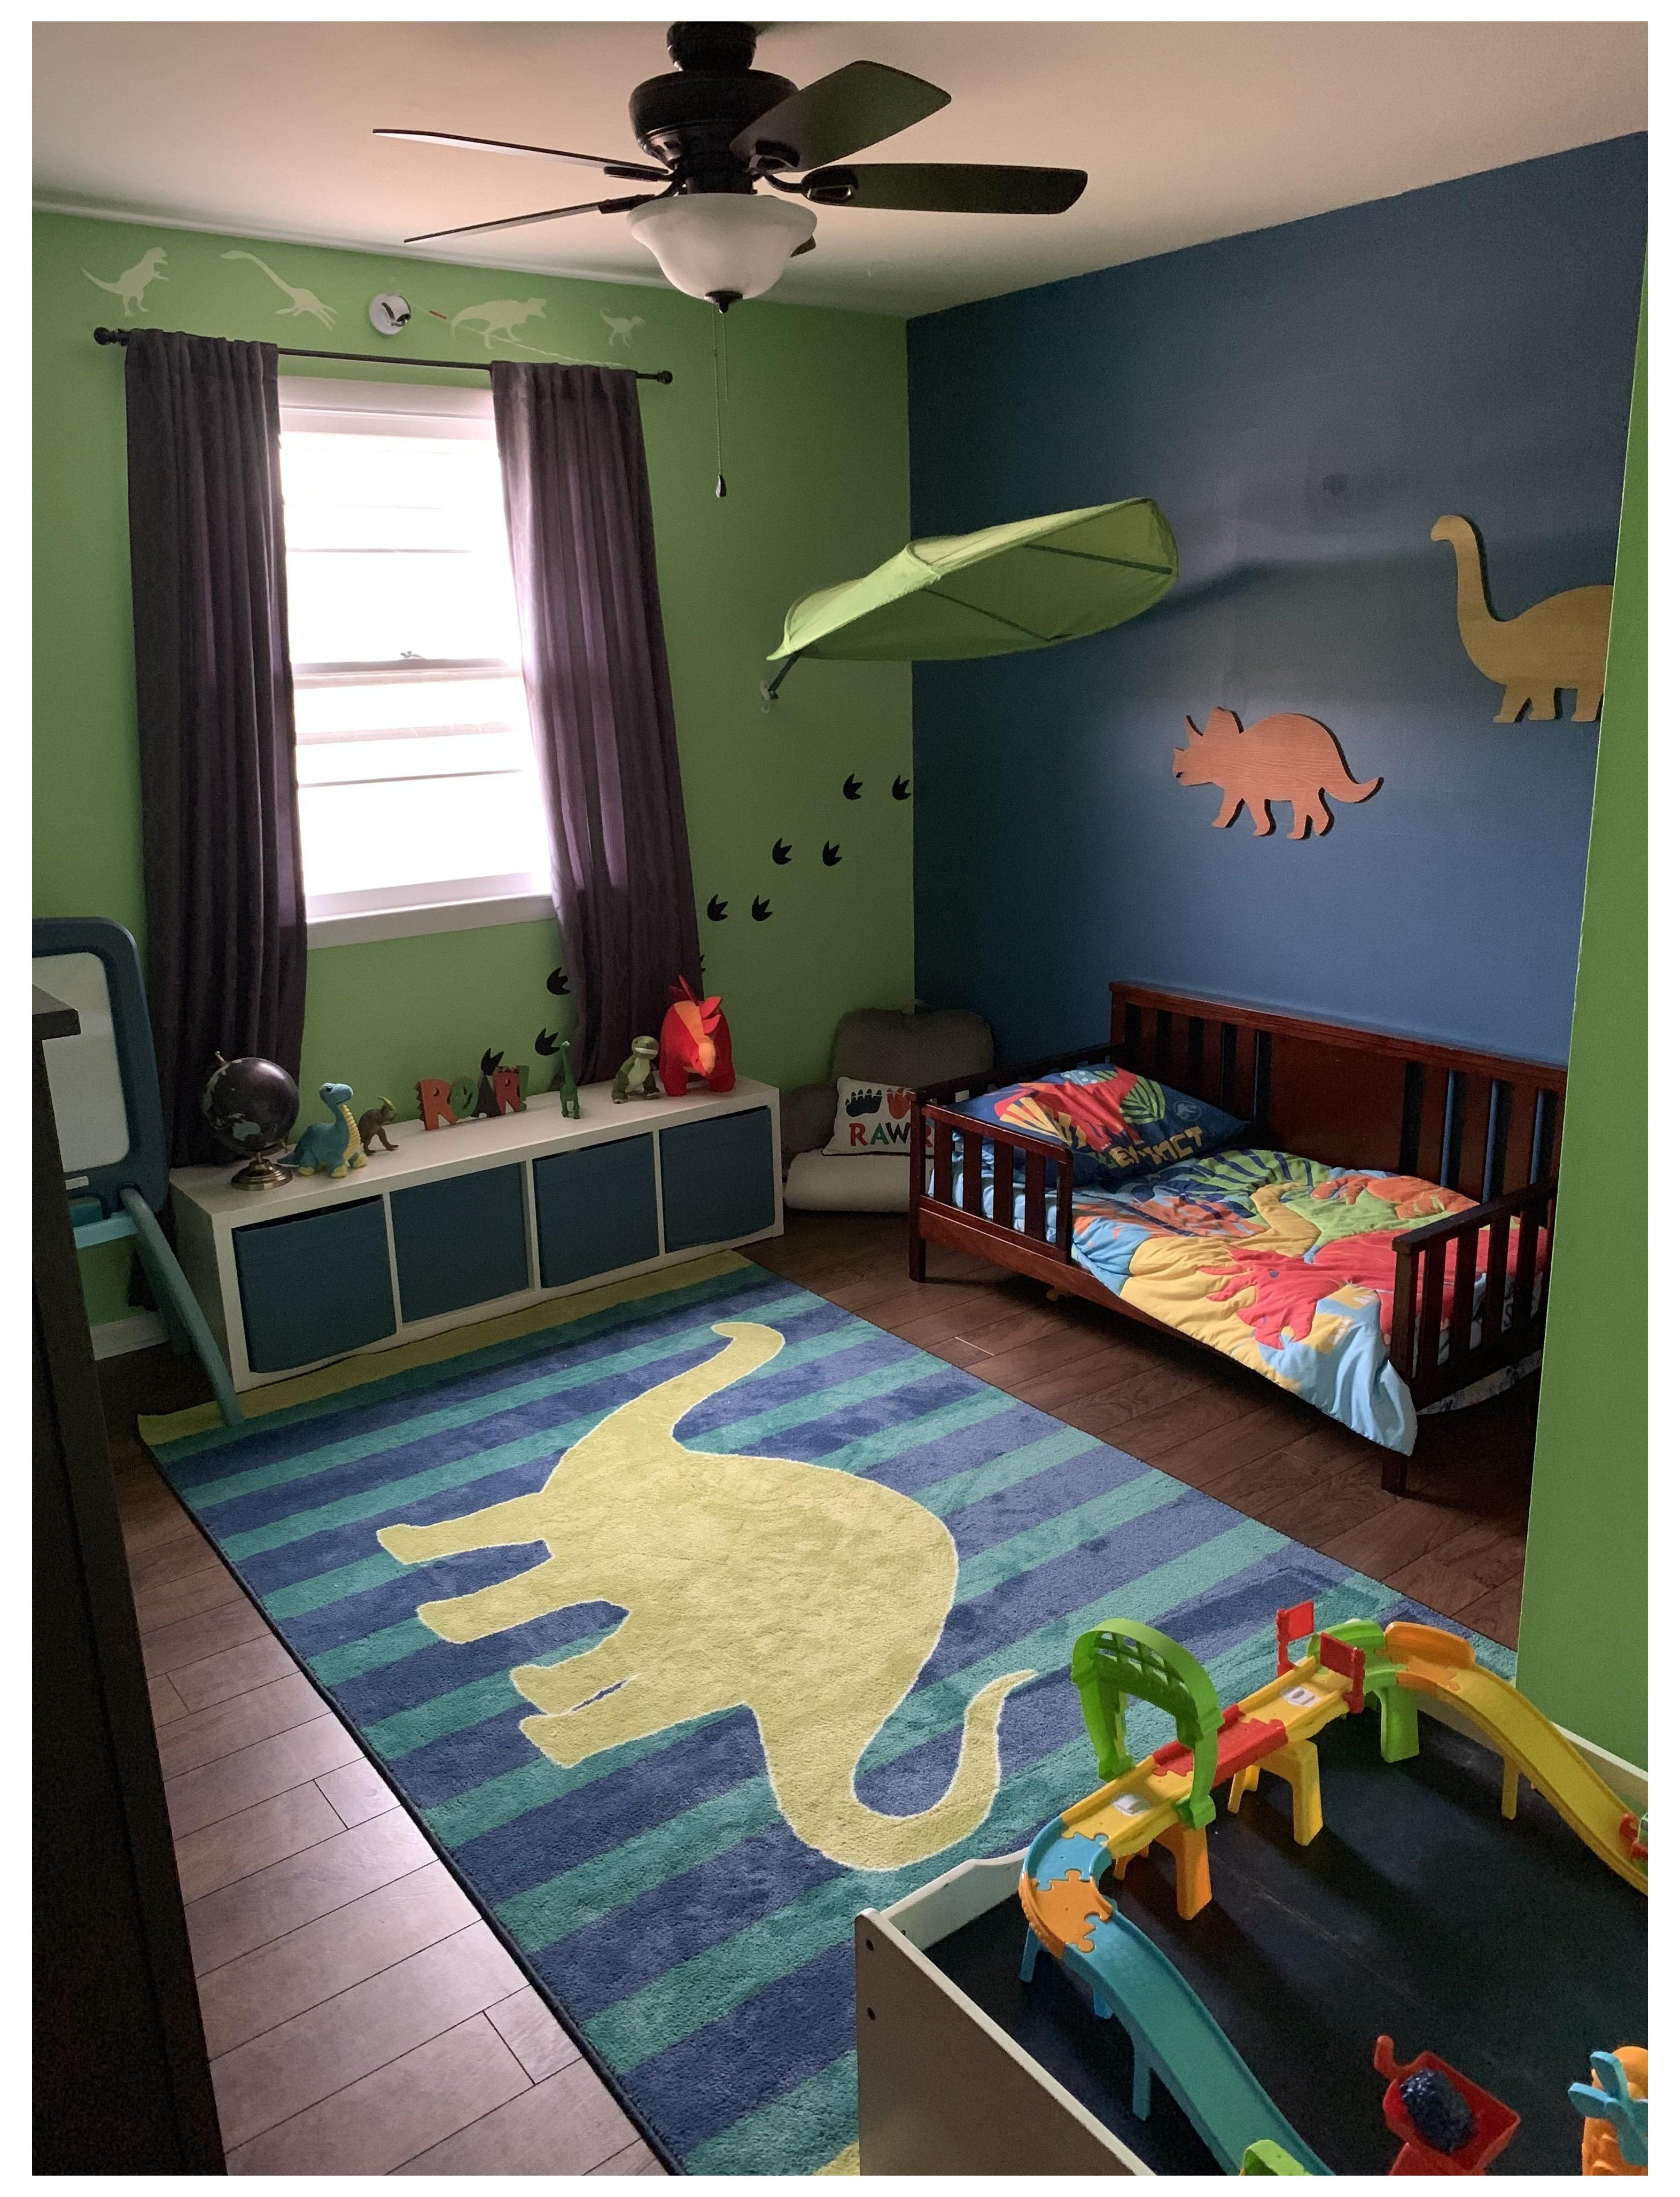 It S Not A Pirate Ship Bed Or A Castle But Pretty Proud Of How Our 2 Year Olds Dino Room Turned Out 2 Toddler Boy Room Themes Toddler Rooms Boy Room Themes